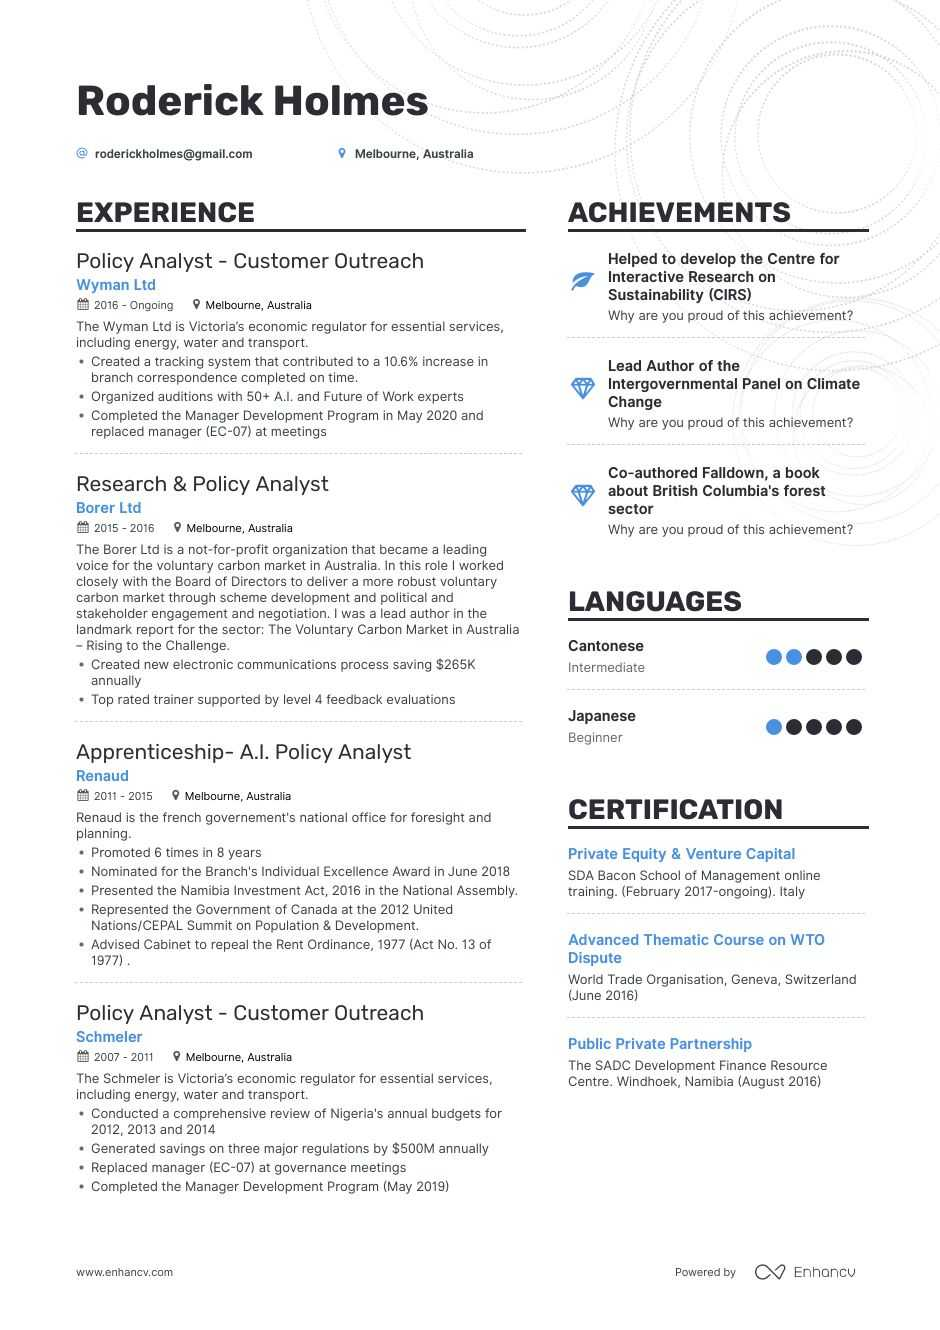 policy analyst resume example for enhancv forestry aws information security sample build Resume Forestry Resume Example